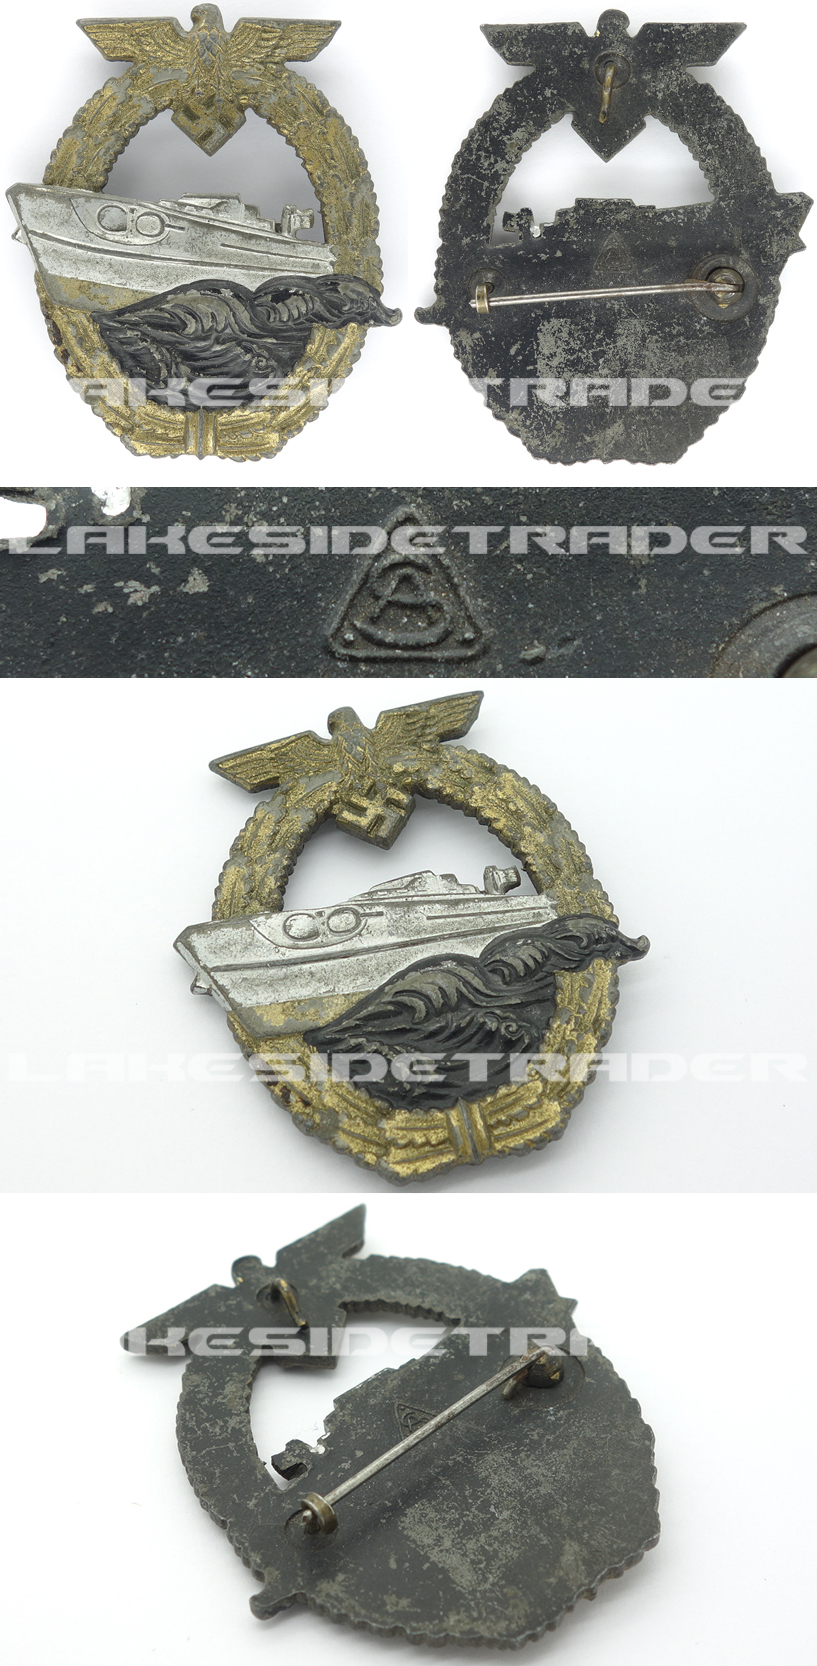 Navy S-Boat Badge by A.S.